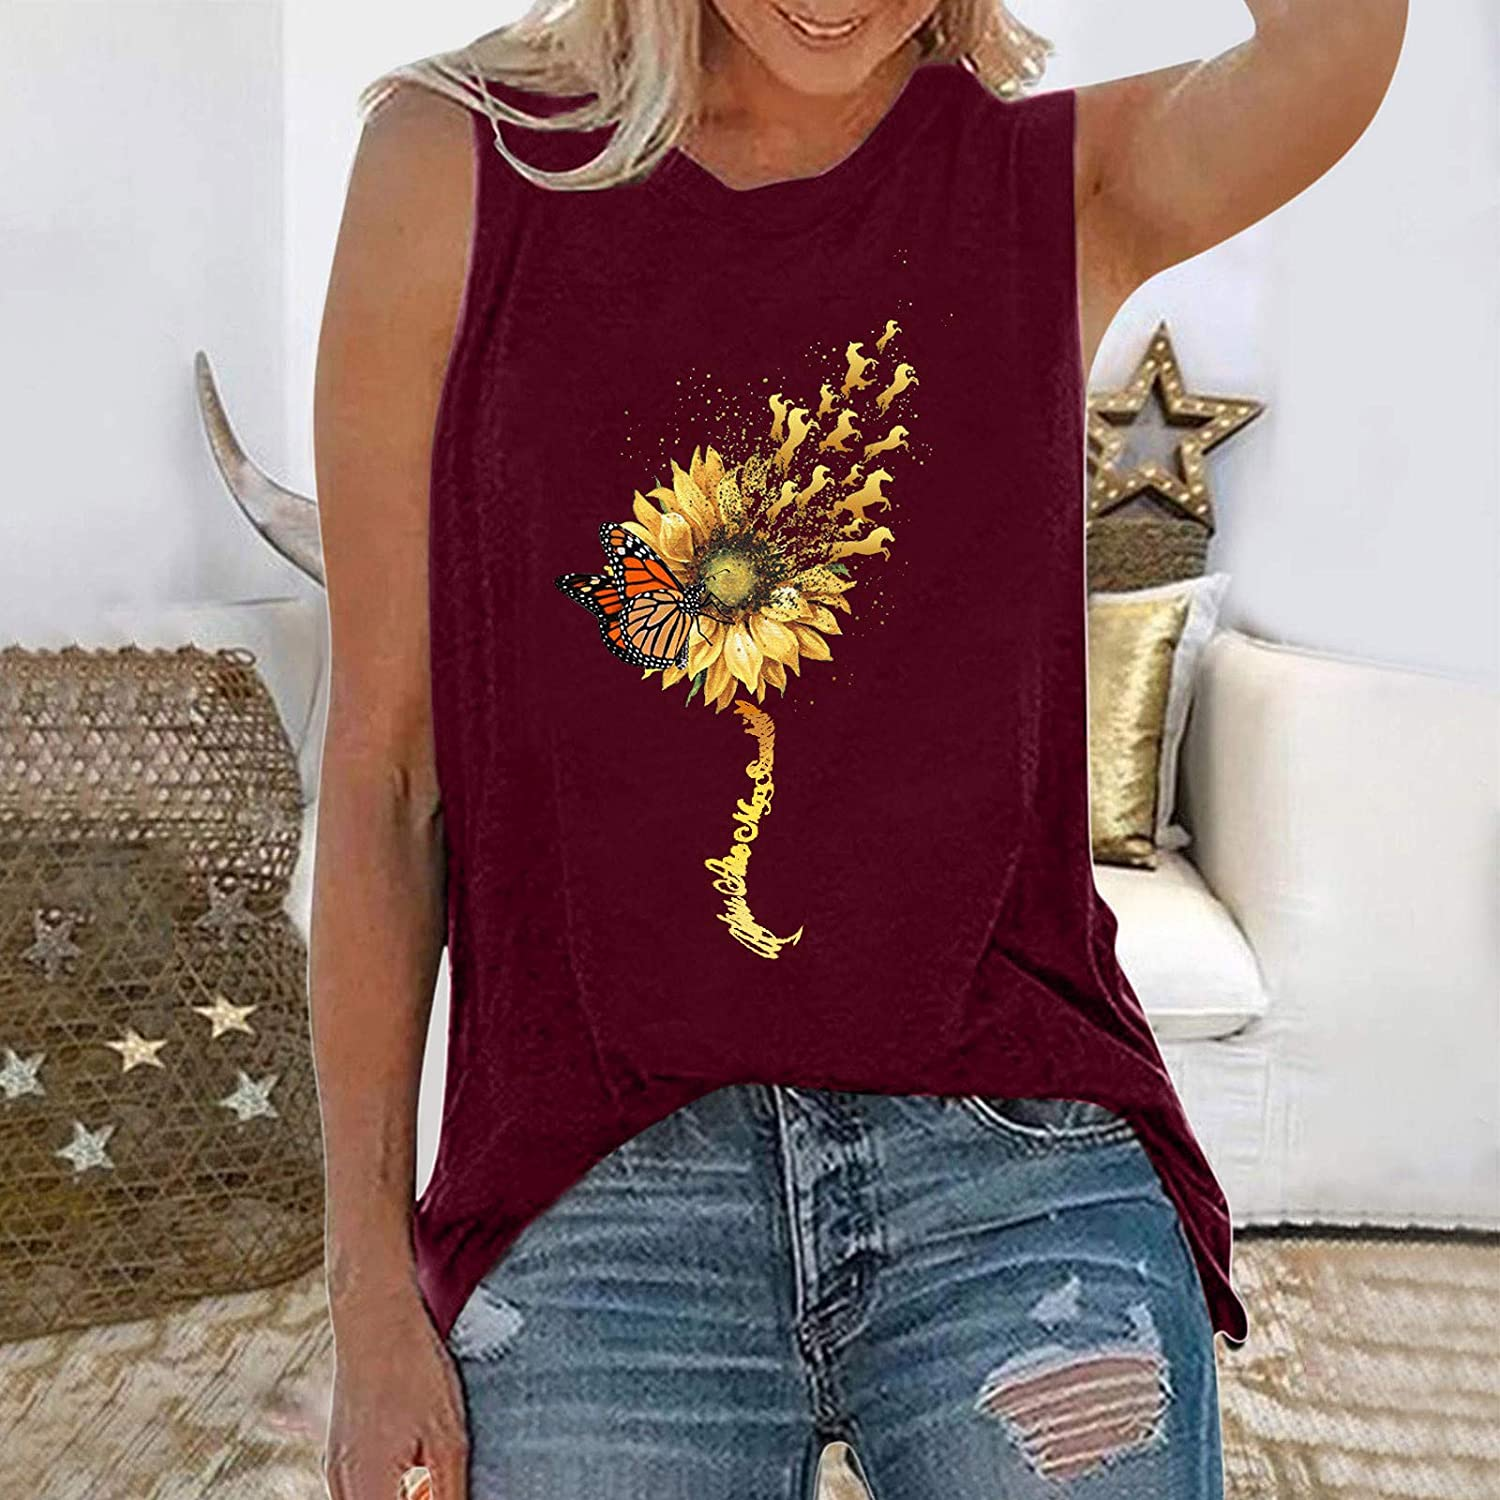 Tank Tops for Women,Womens Tops for Independence Day Women Letters Printing Sleeveless O-Neck Tank Shirt